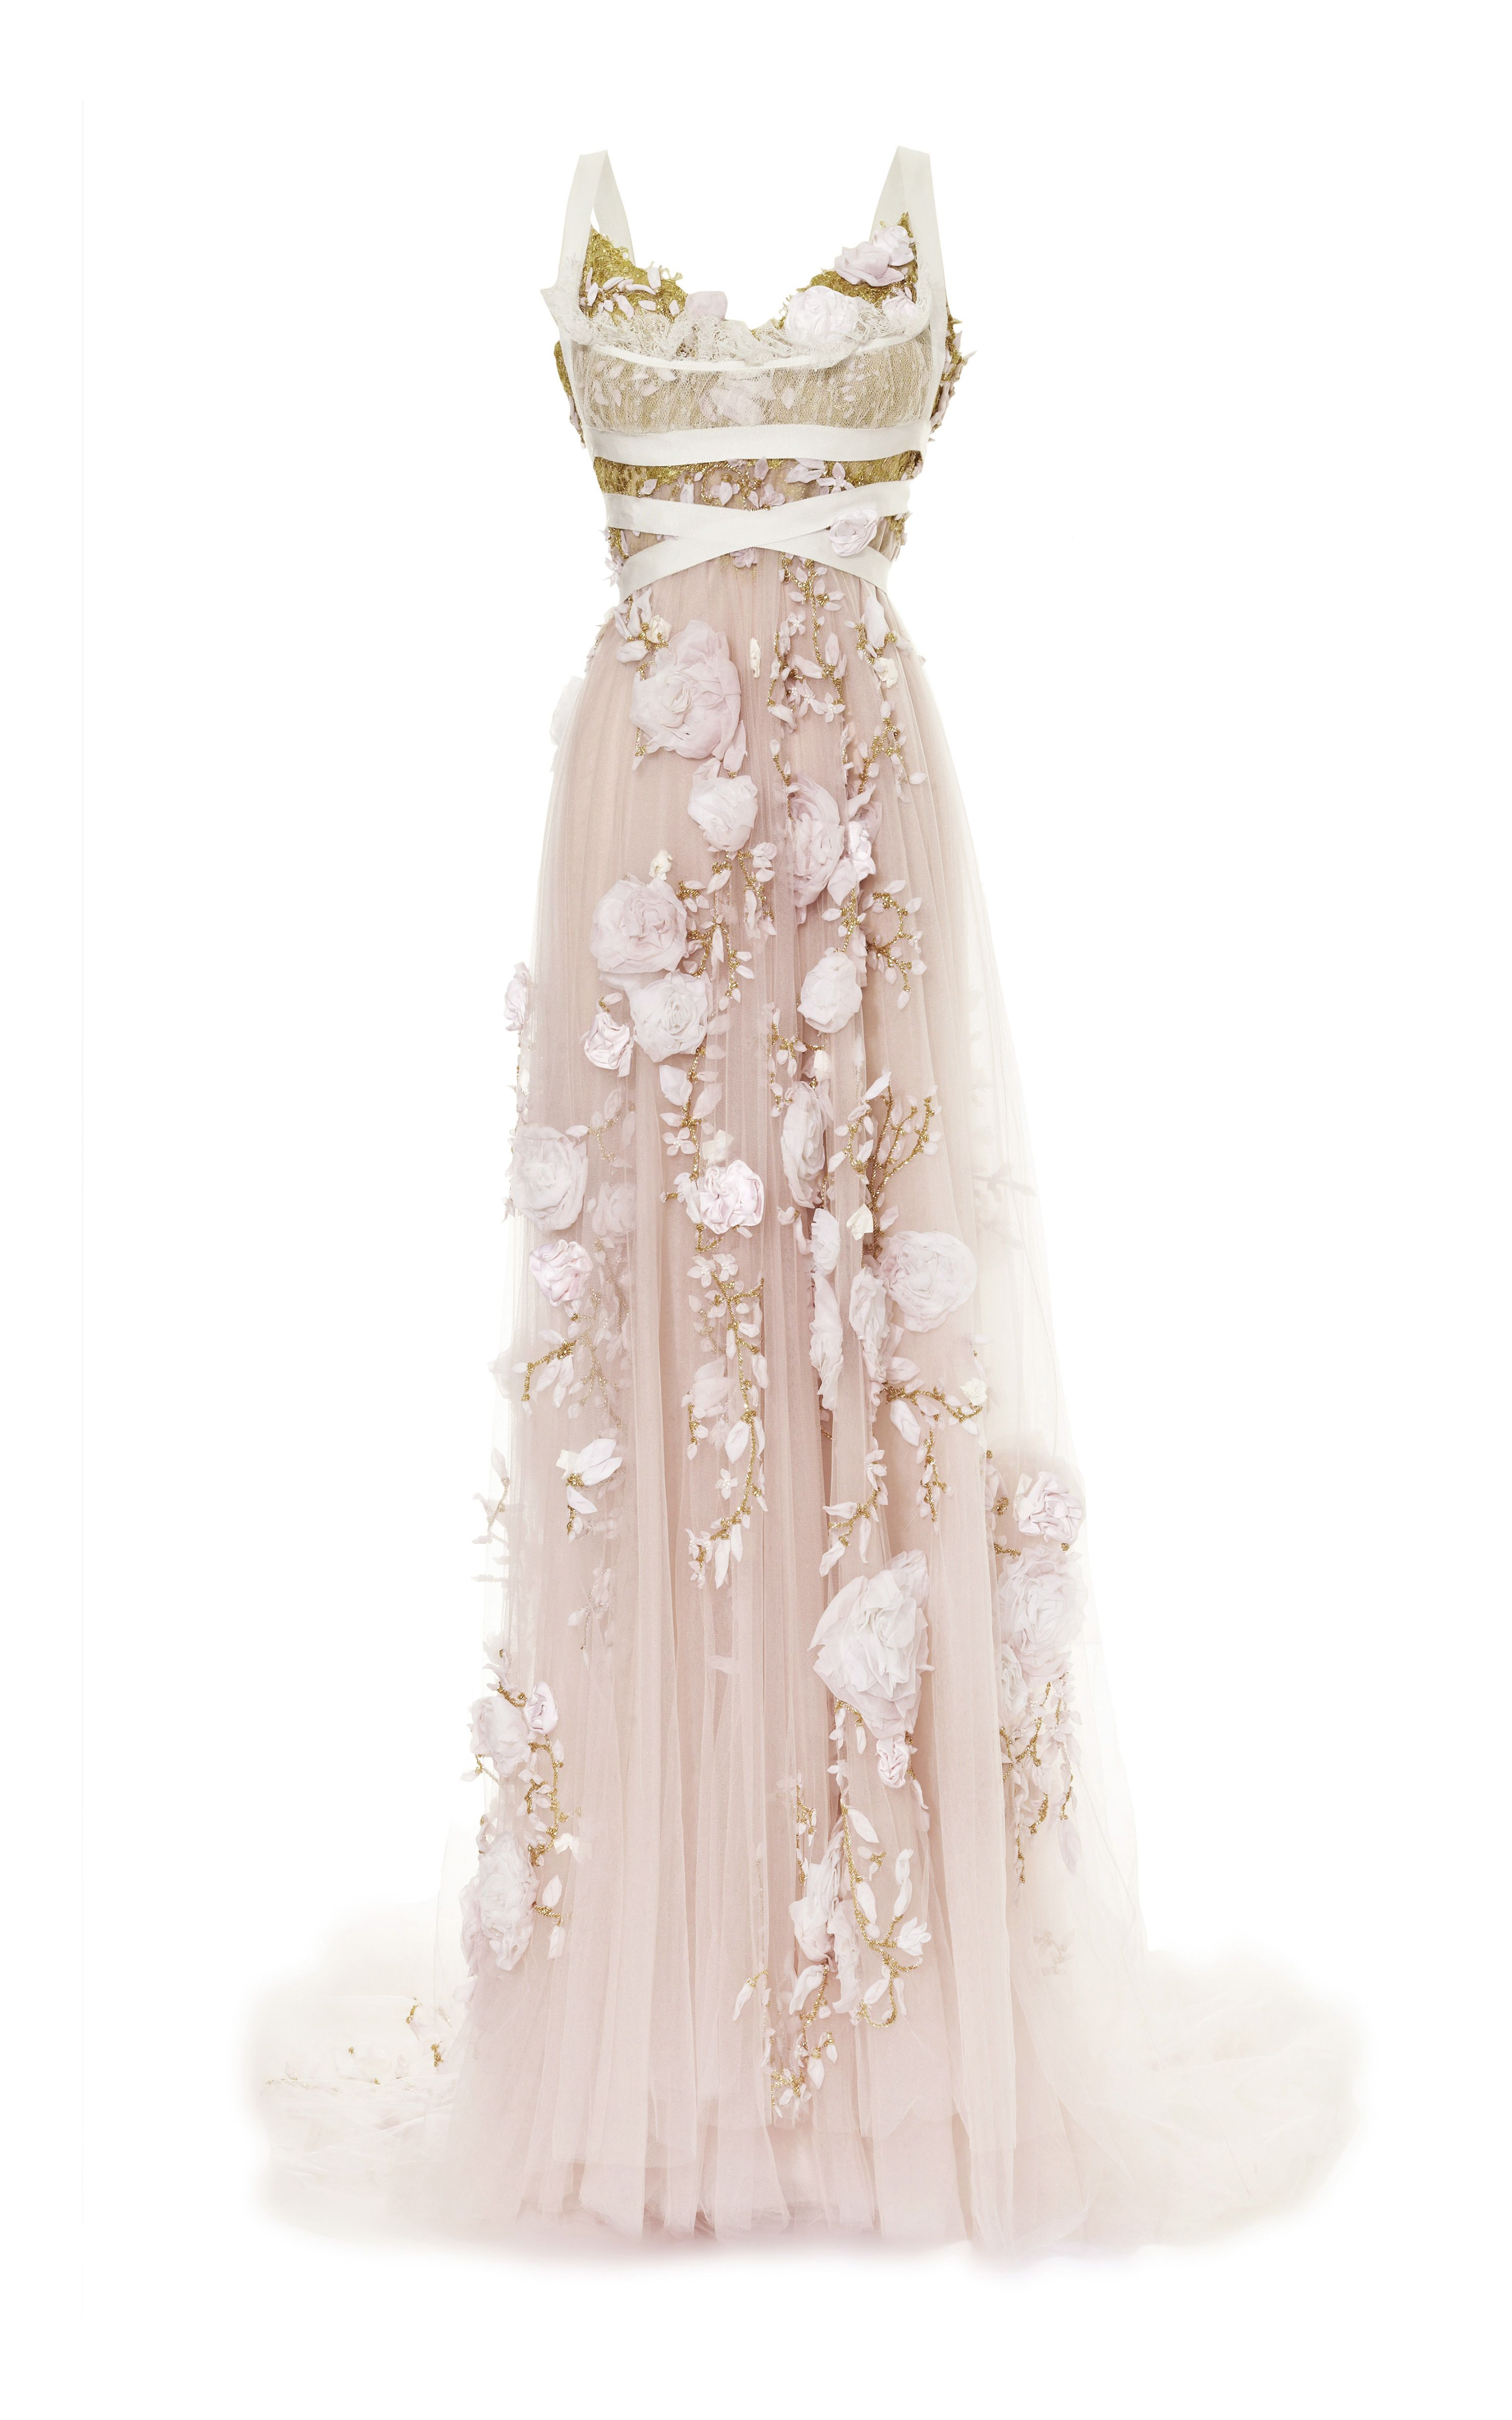 This has got to be one of the most beautiful gowns I've ever seen. Wow.  3D Silk Ribbon Rose Empire Waist Gown.